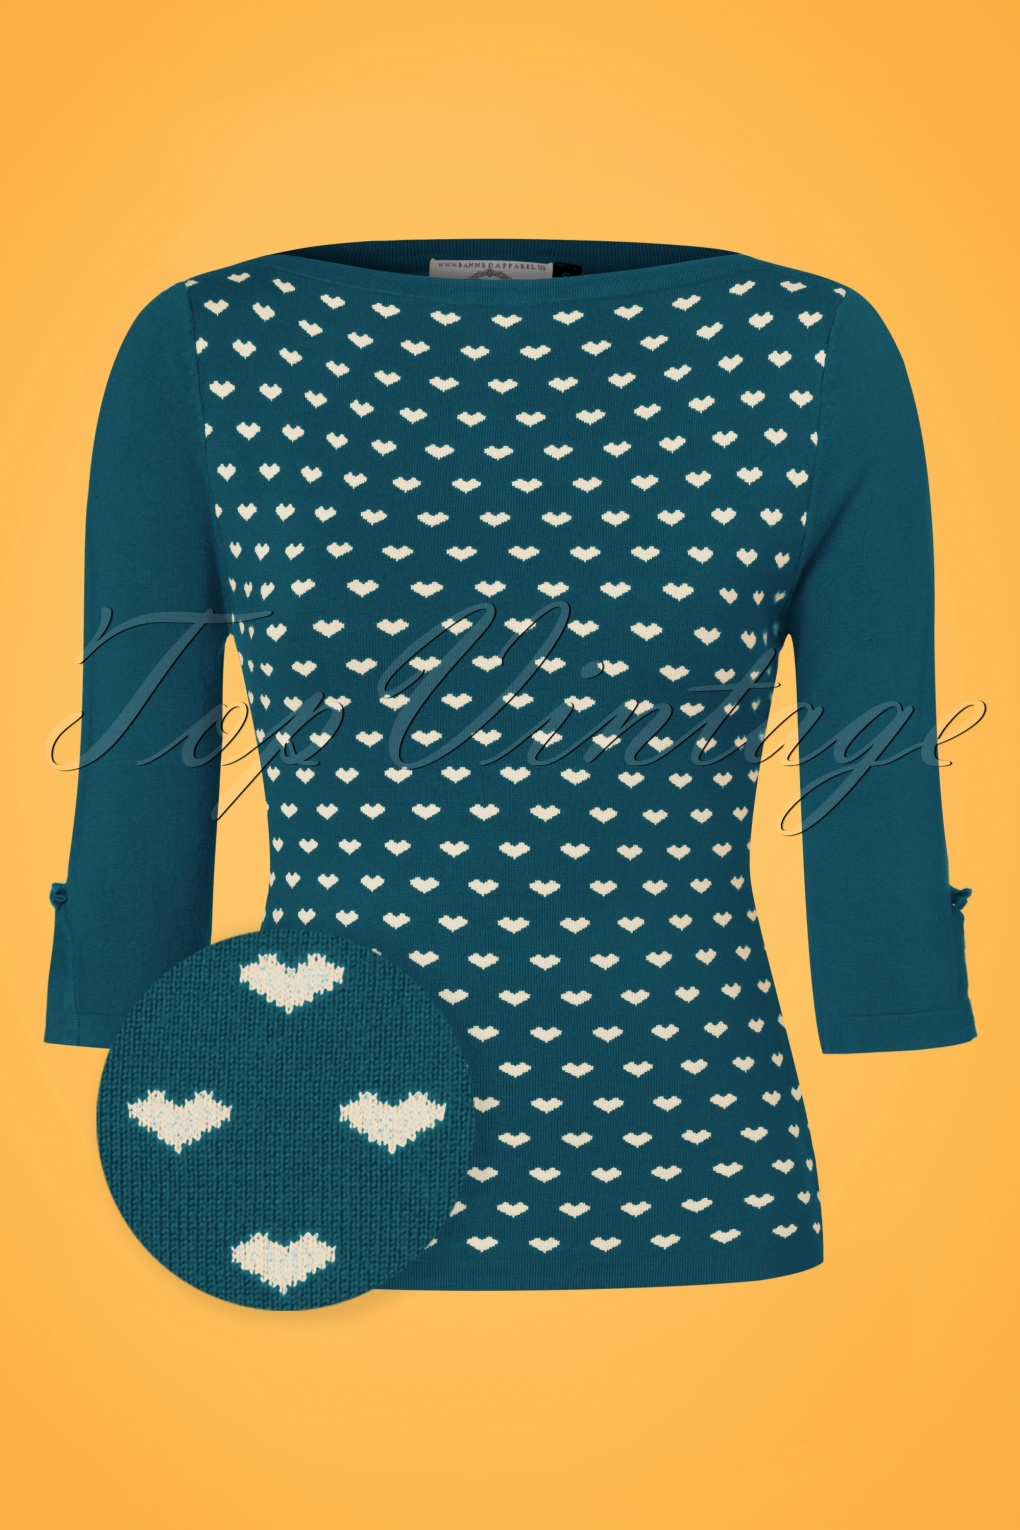 1950s Style Sweaters, Crop Cardigans, Twin Sets 60s Charming Heart Knit Sweater in Teal £36.08 AT vintagedancer.com